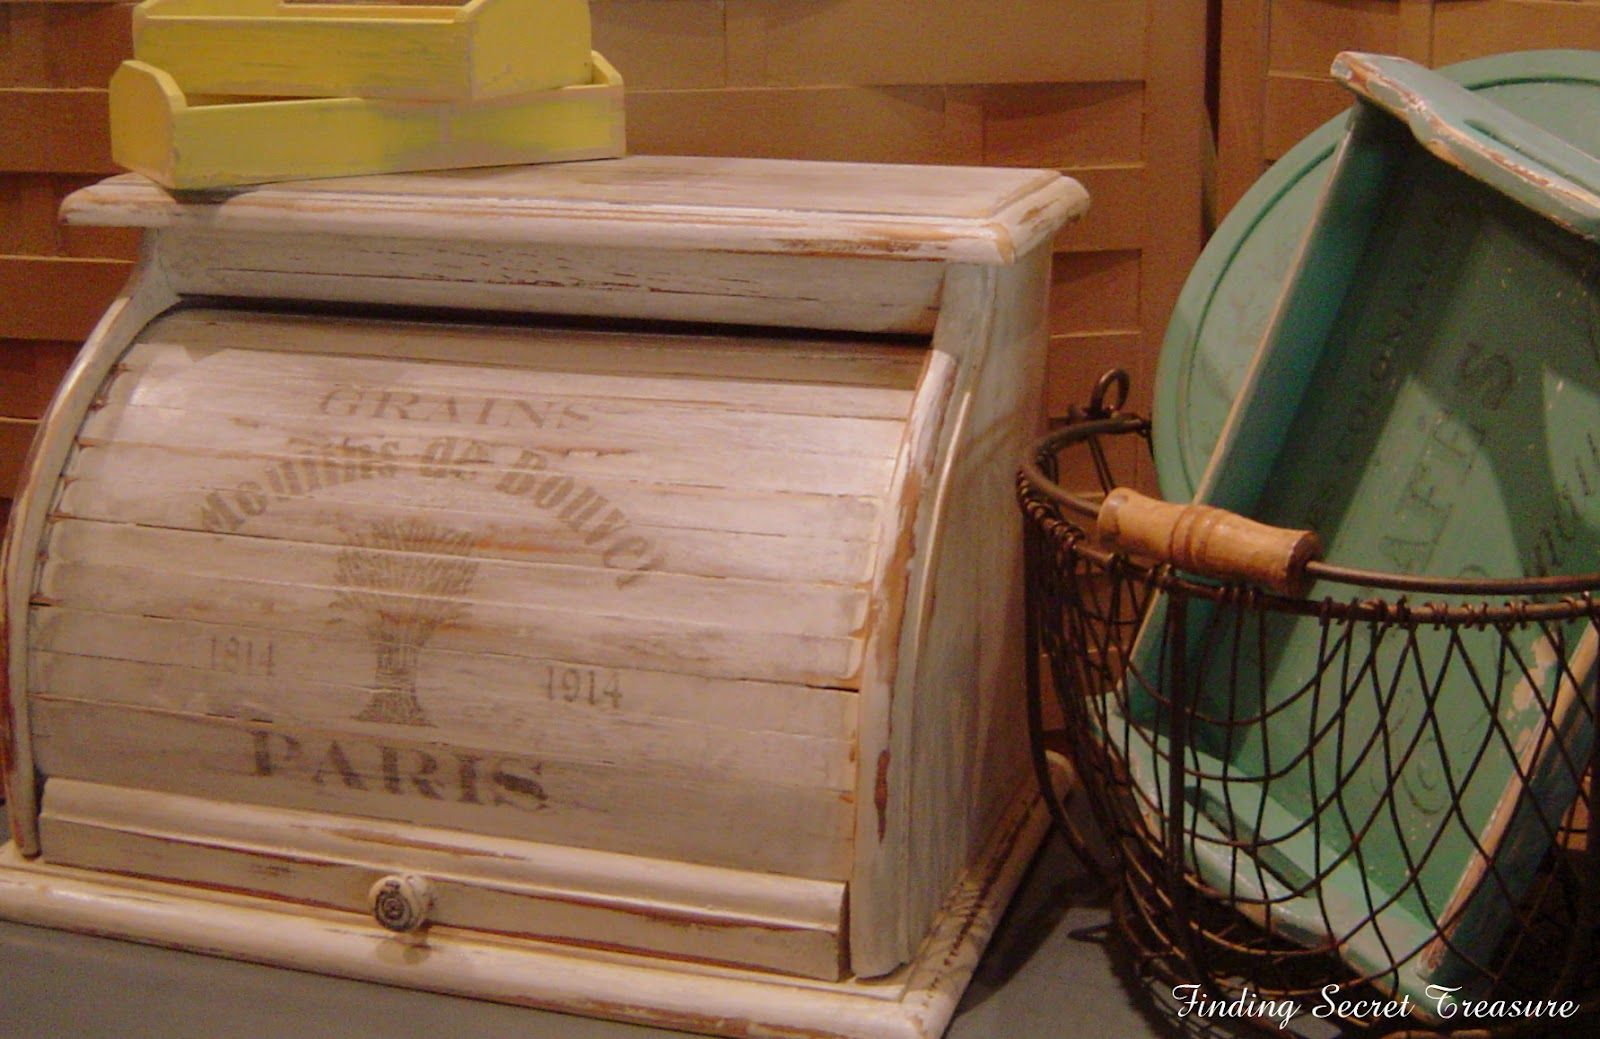 Finding Secret Treasure: Up-Cycled Bread Box